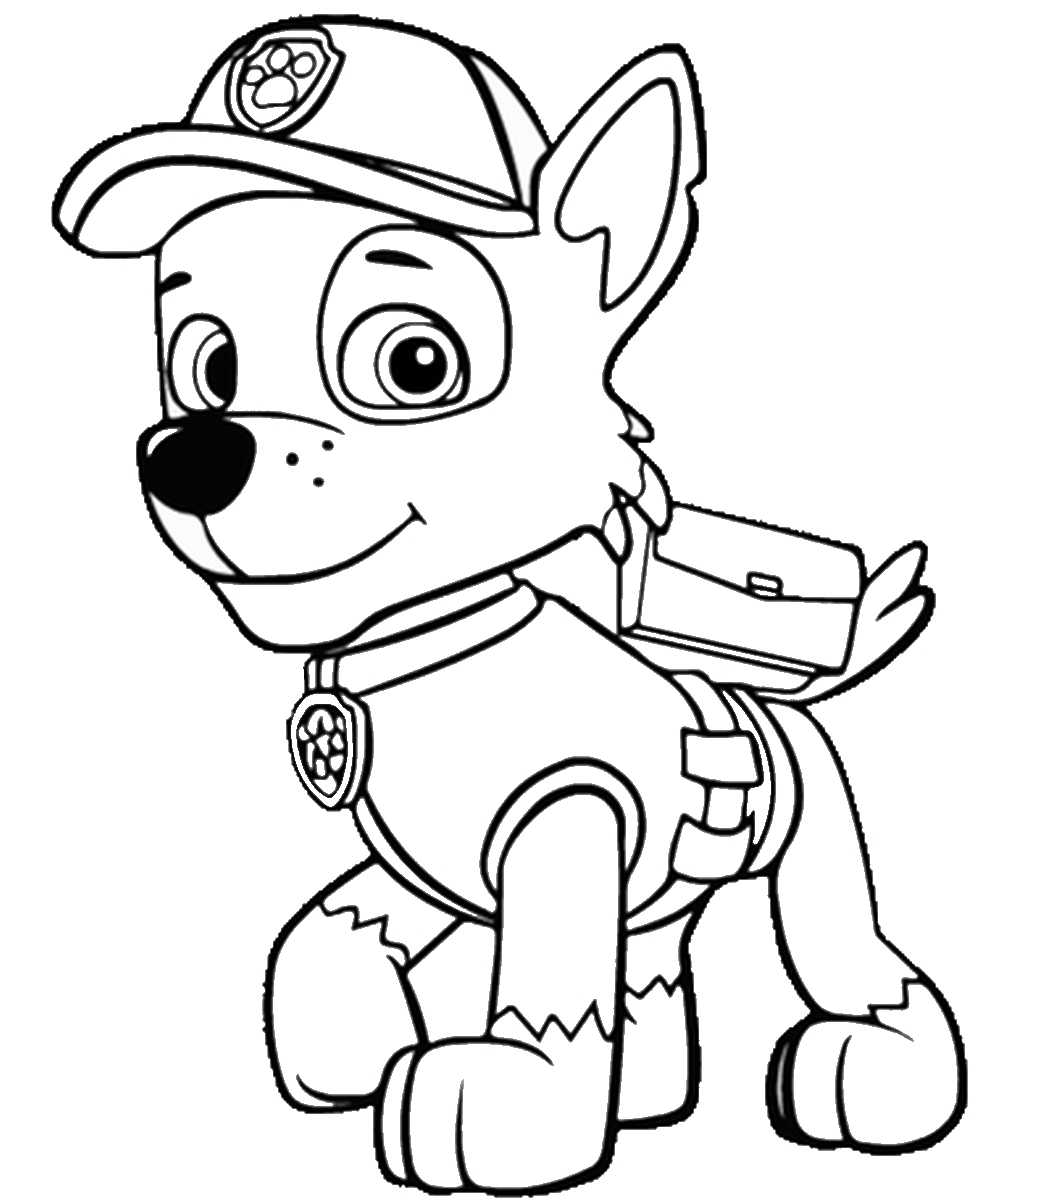 free printable paw patrol coloring pages - paw patrol coloring pages printable